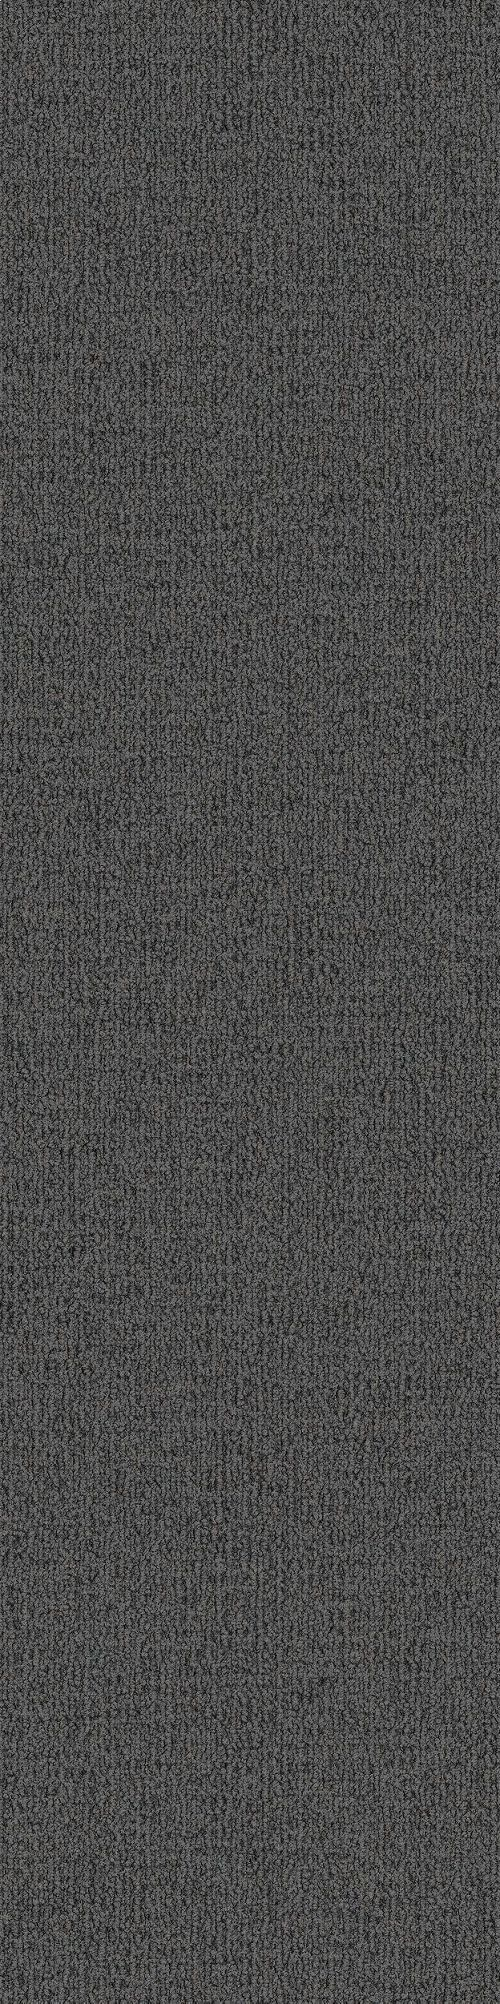 Interface carpet tile: EM551 Color name: Hill St. Variant 5